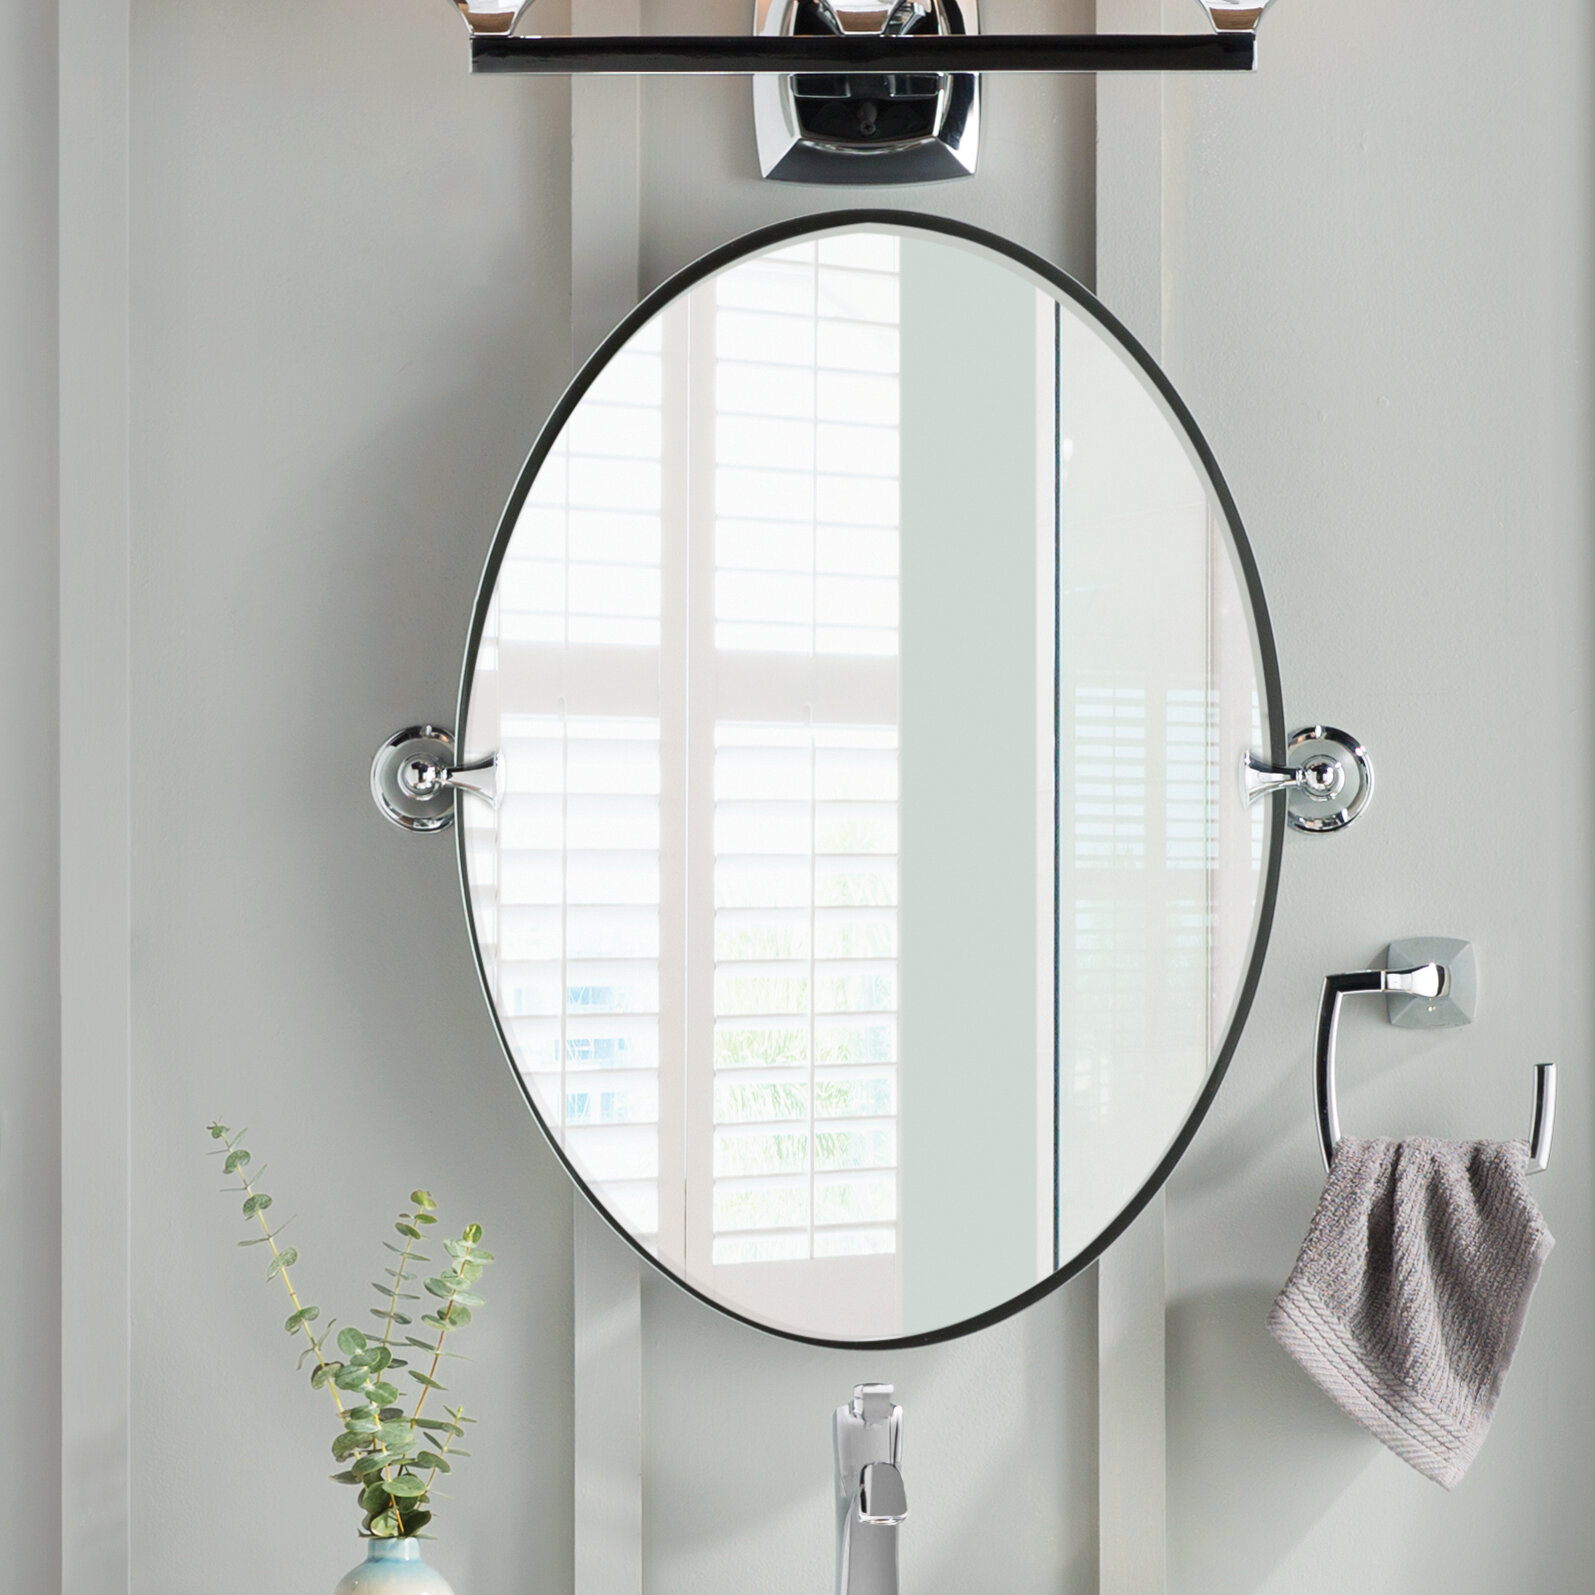 Dn2692ch Bn Moen Glenshire Contemporary Beveled Frameless Vanity Mirror Reviews Wayfair